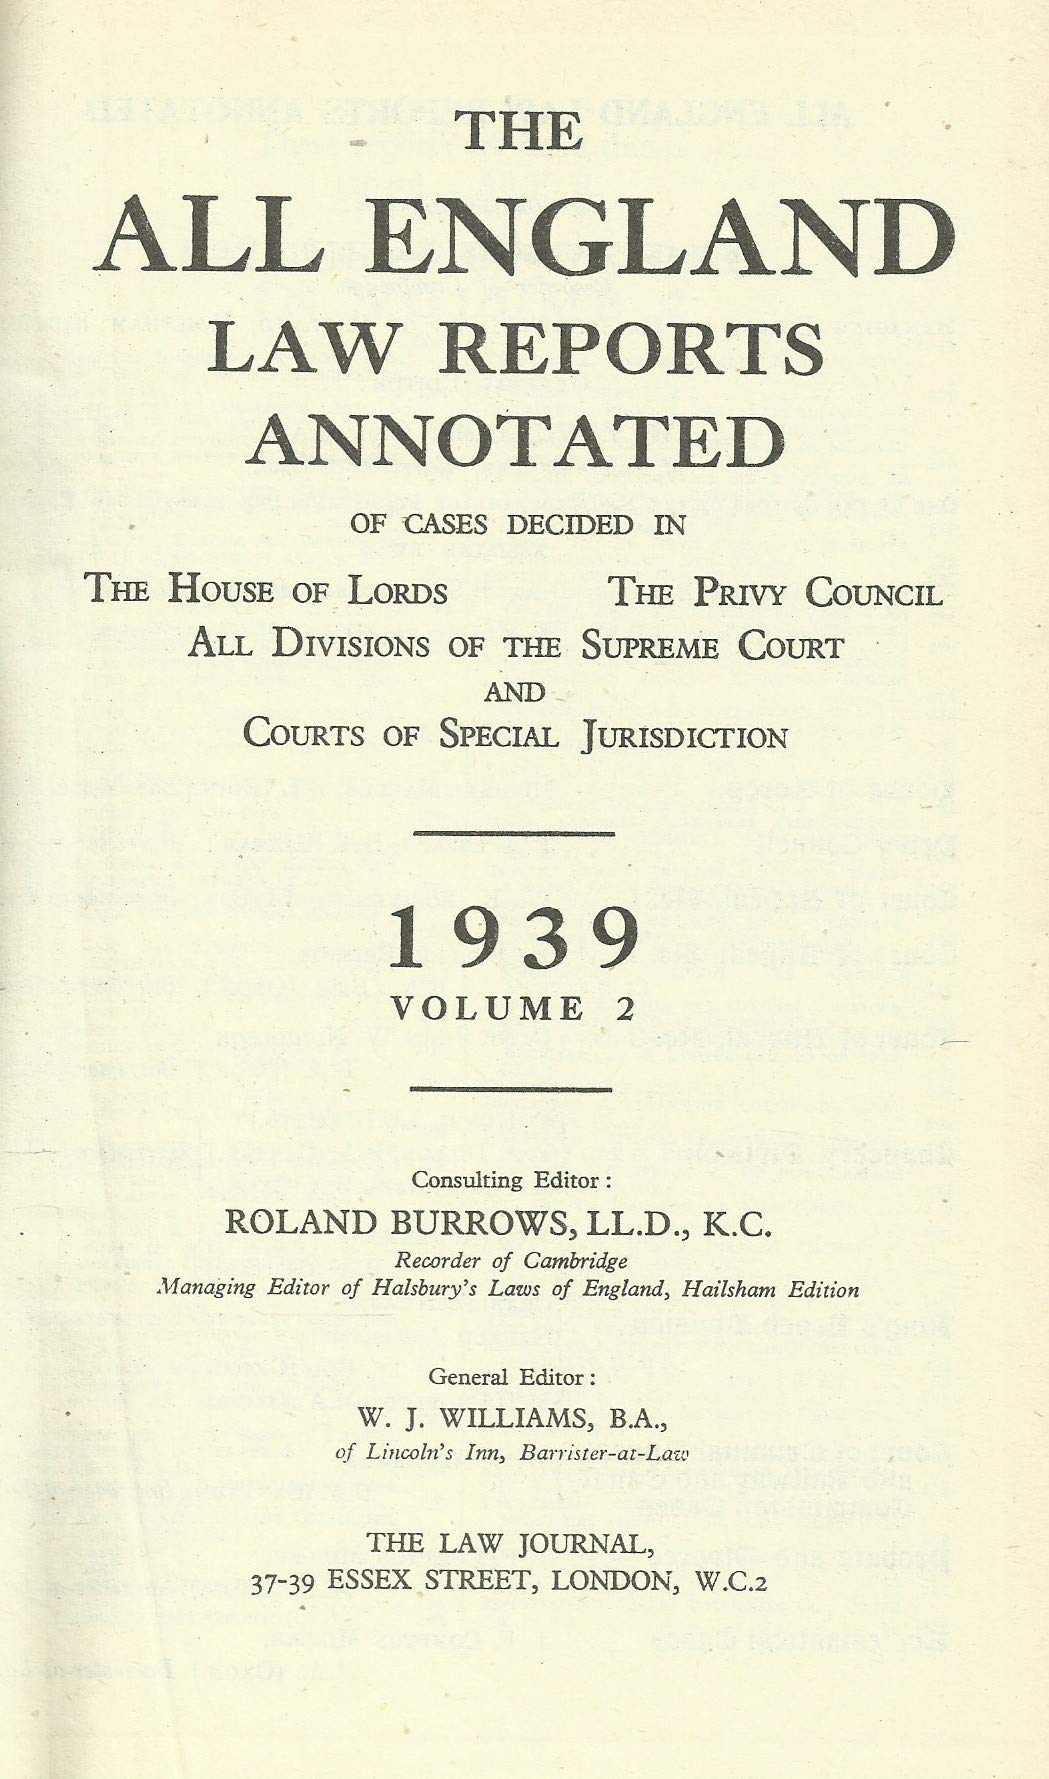 The All England Law Reports 1939, Volume 2